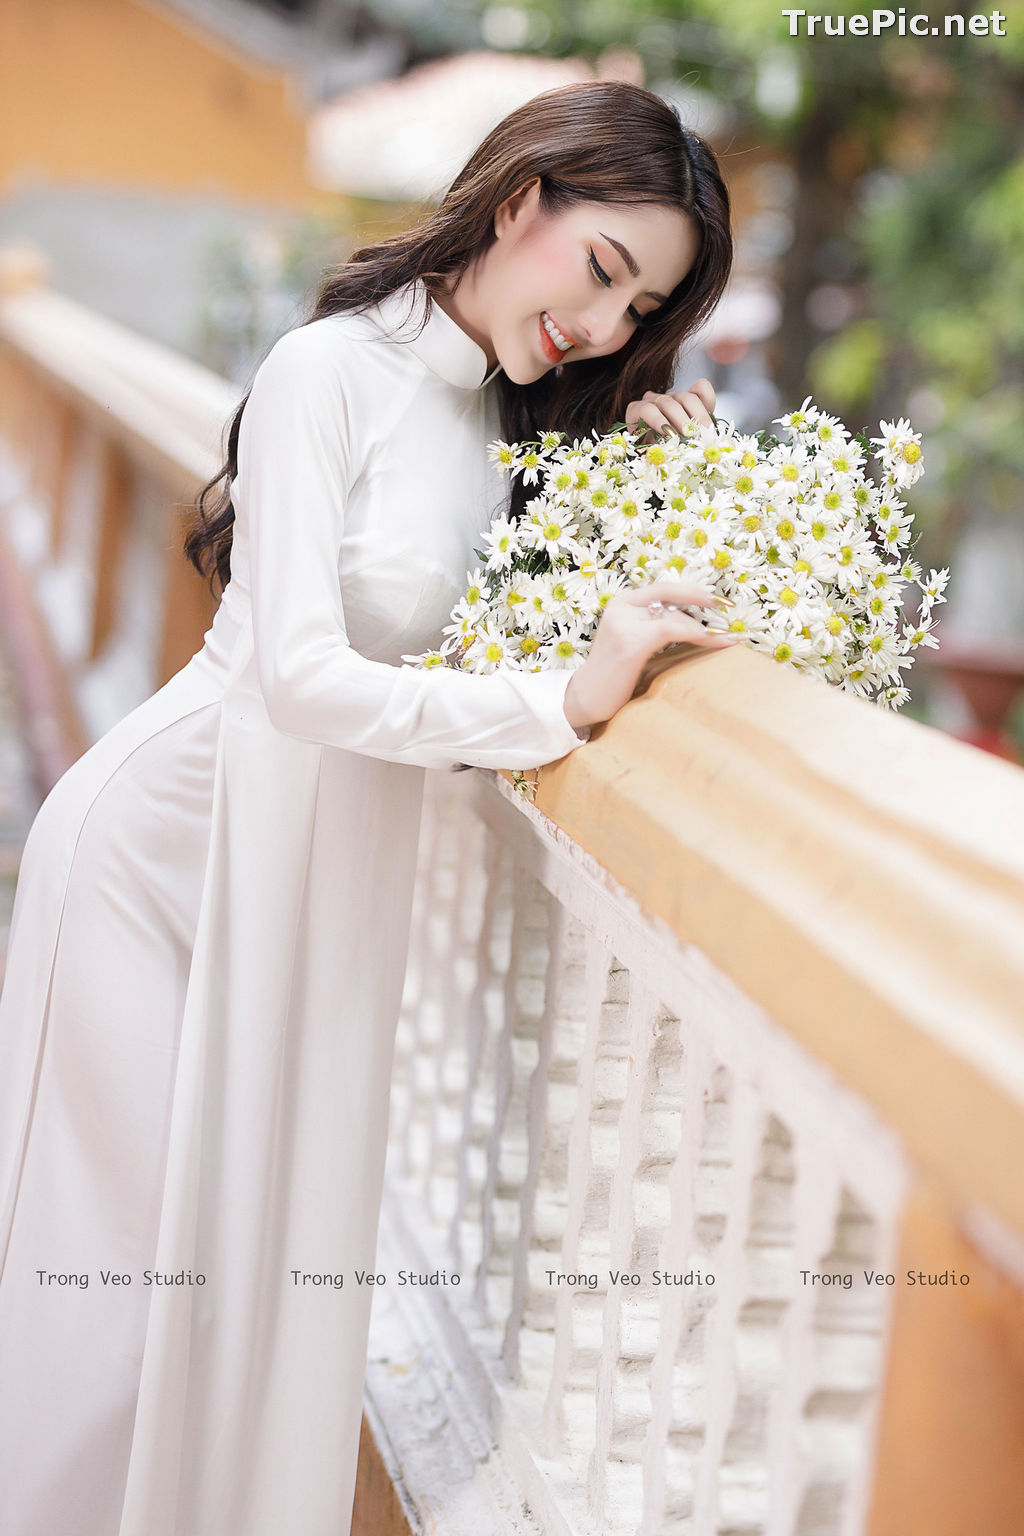 Image The Beauty of Vietnamese Girls with Traditional Dress (Ao Dai) #3 - TruePic.net - Picture-9